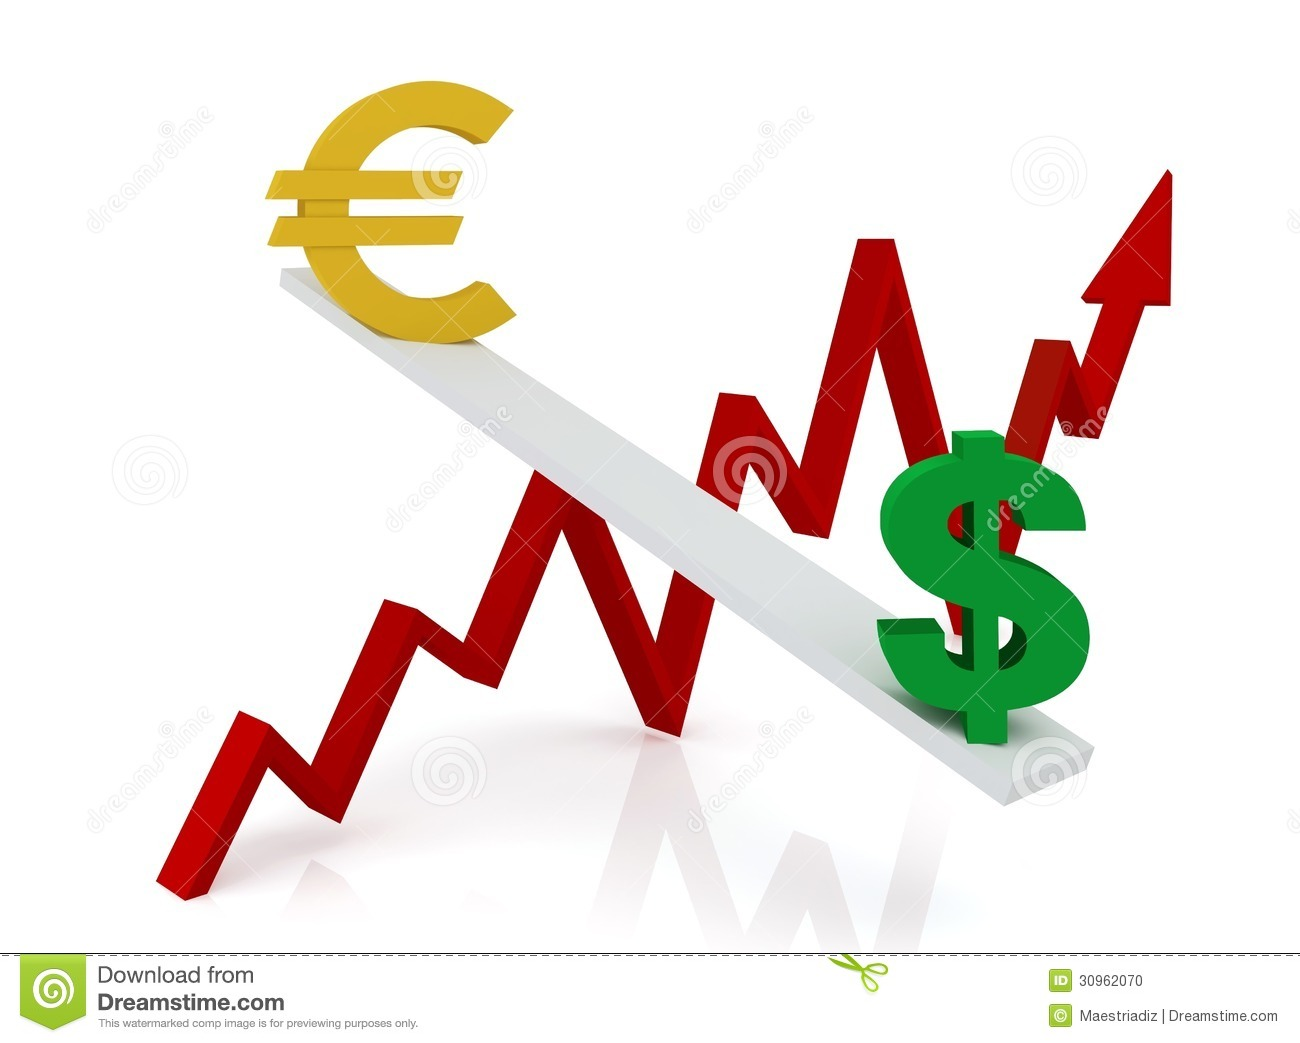 Forexticket fr conversion monnaie chf eur